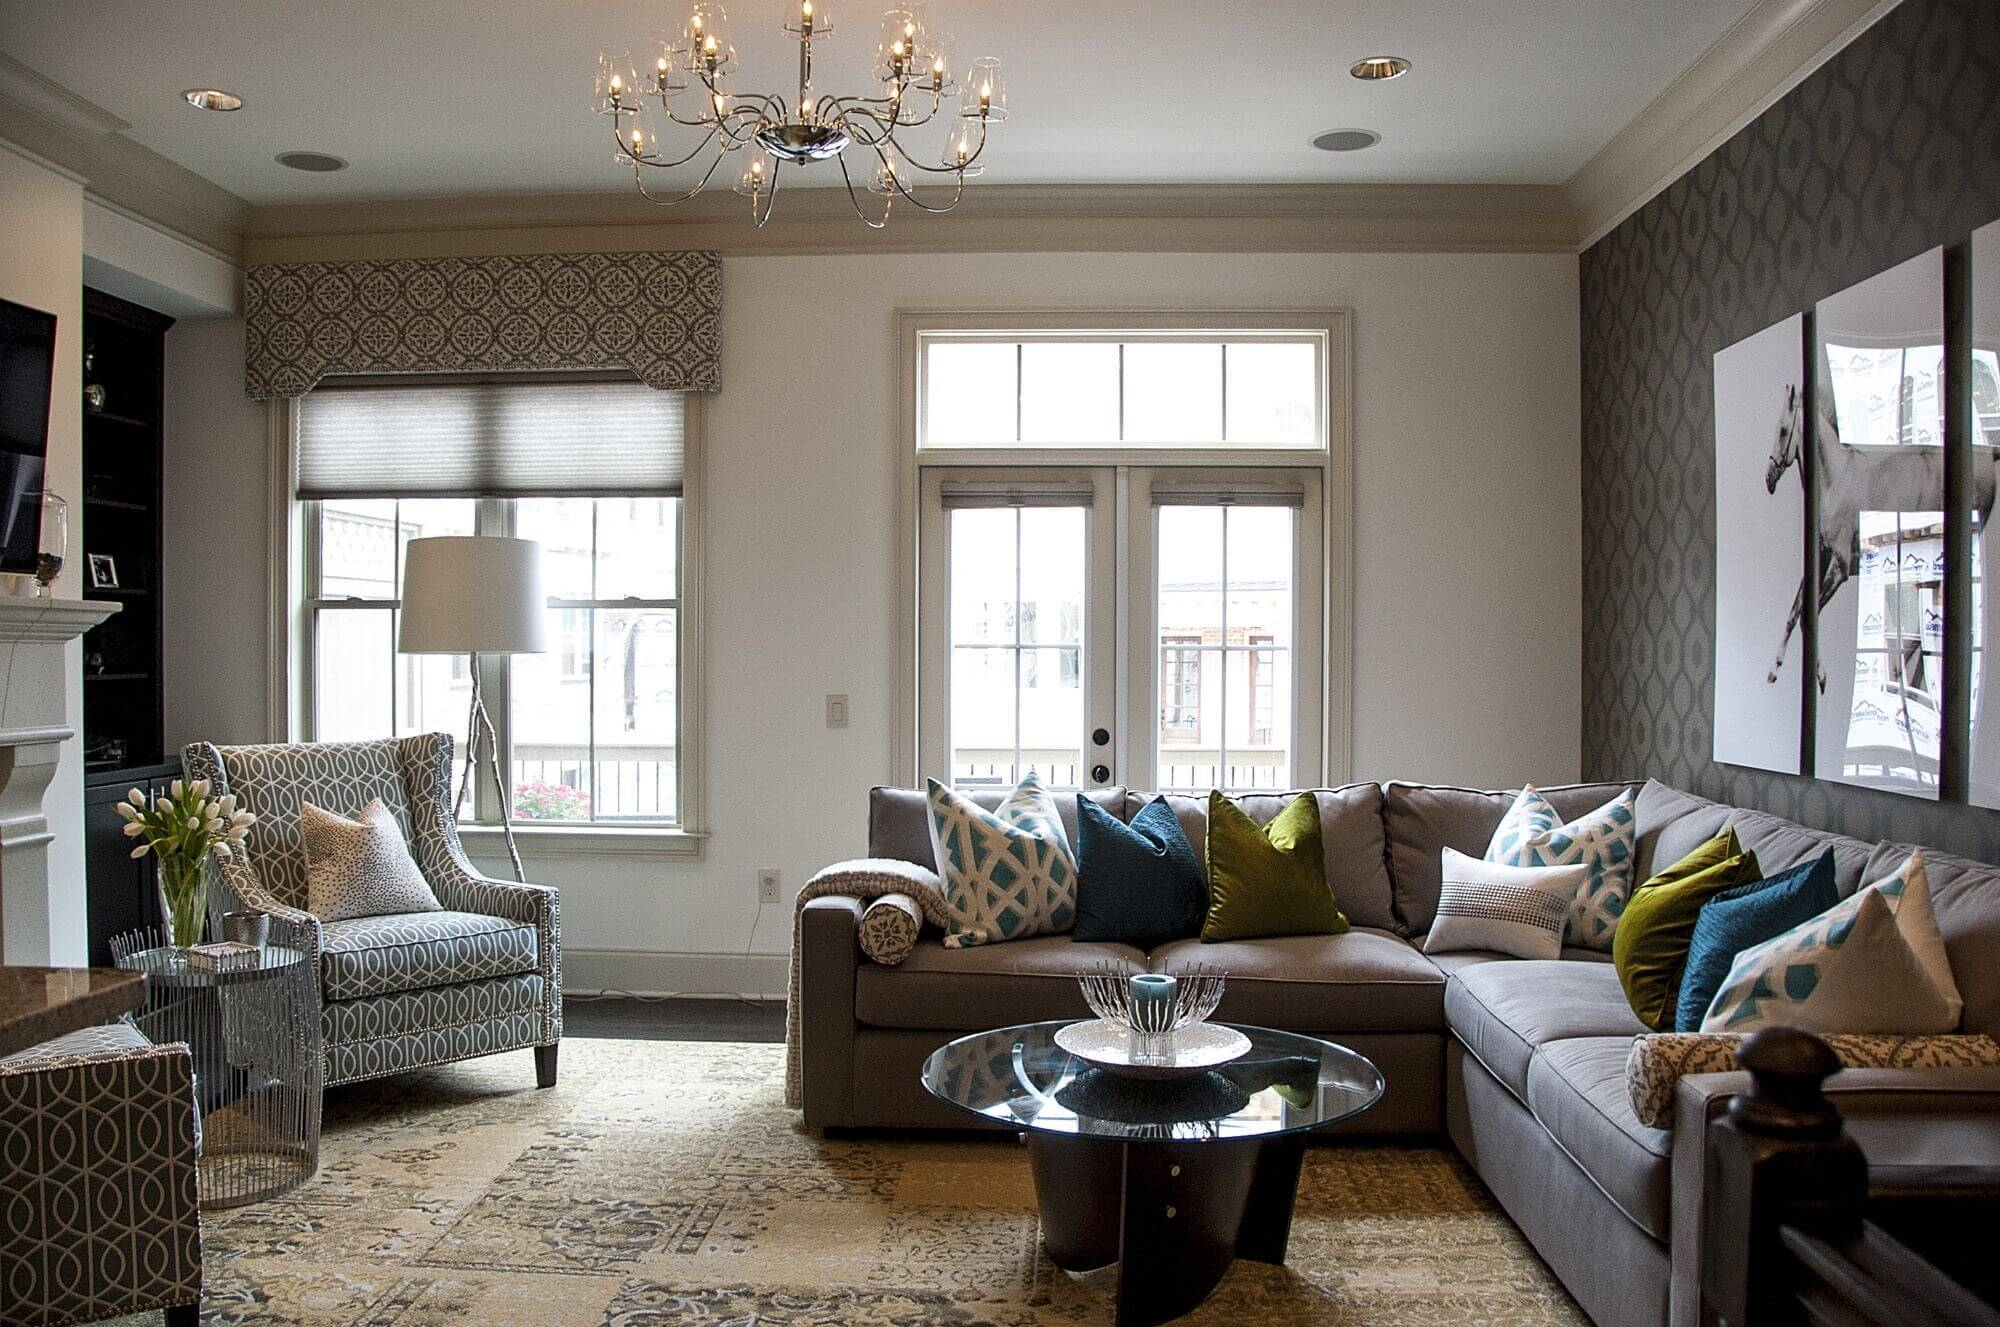 Living Room Ideas With Sectionals Living Room Design And Living Within  Decorating With A Sectional Sofa